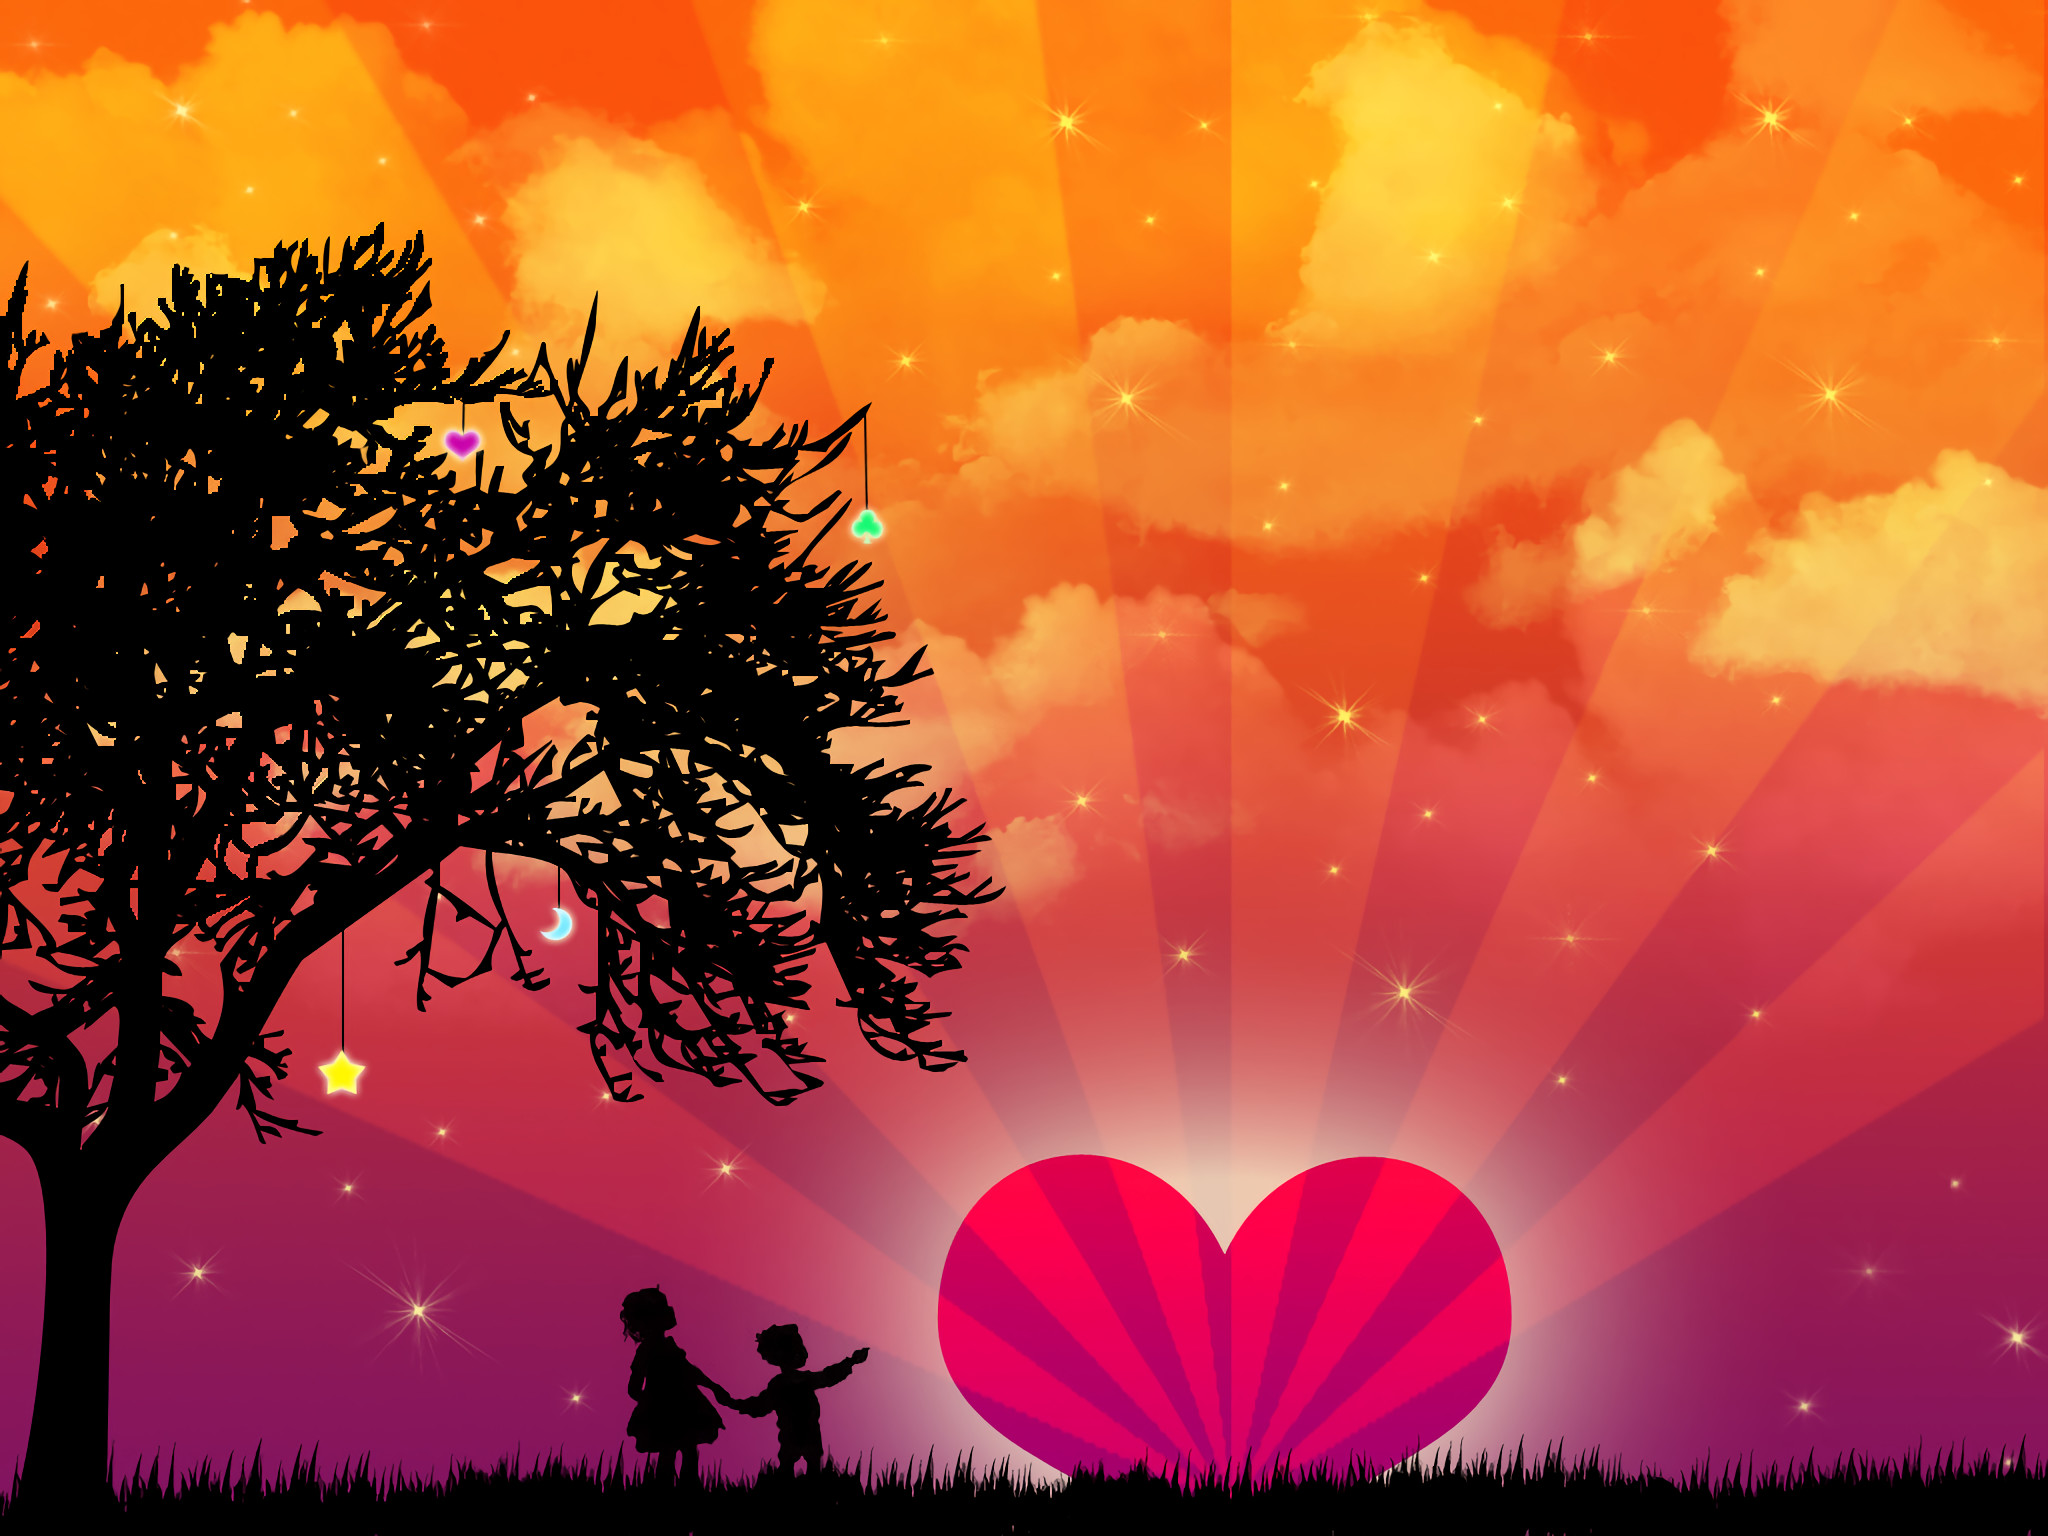 Cute Love Wallpapers For Desktop (66+ Images